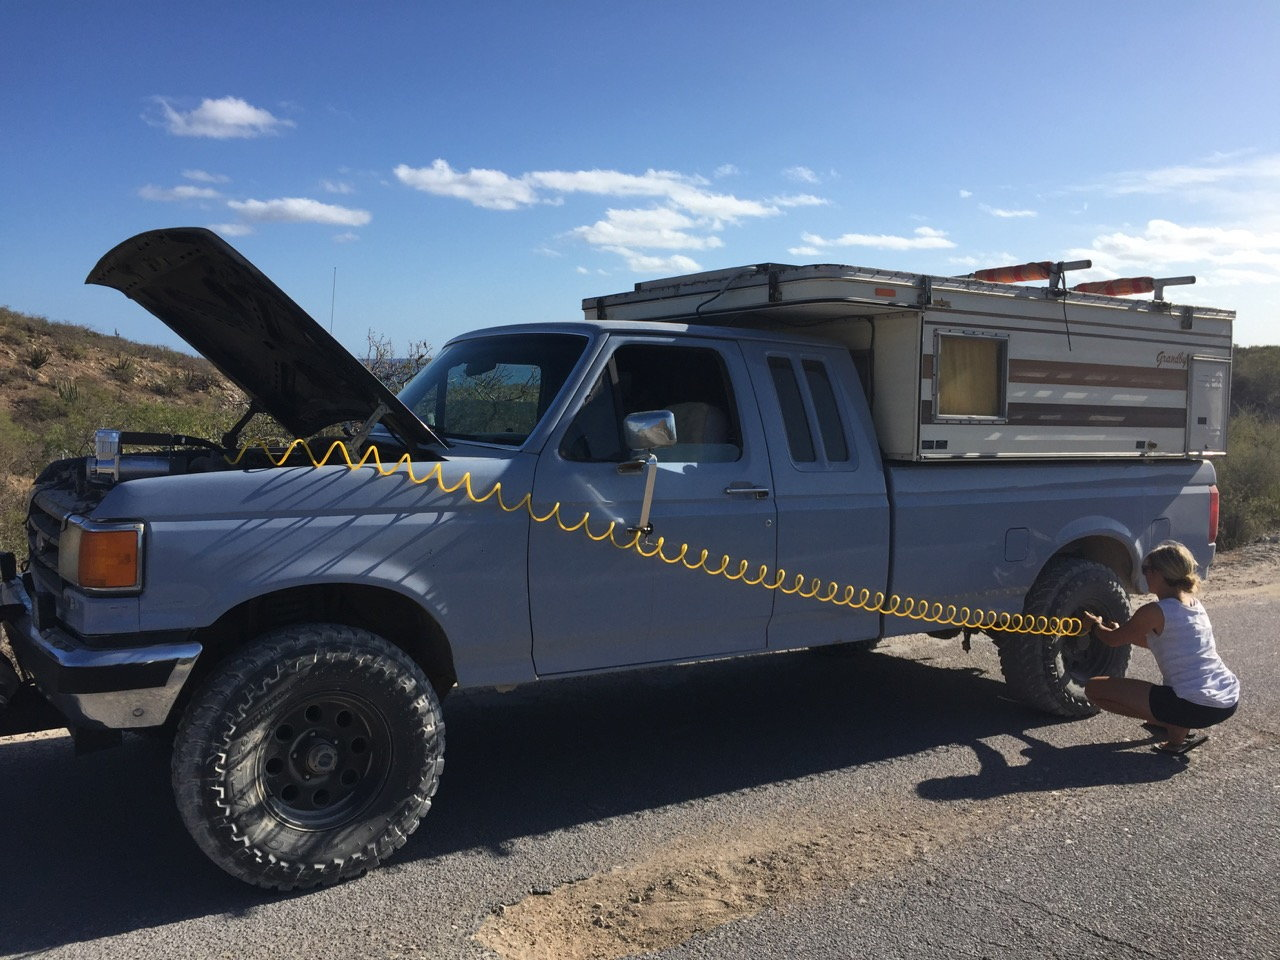 1991 F150 Alignment (negative camber?) - Ford F150 Forum - Community